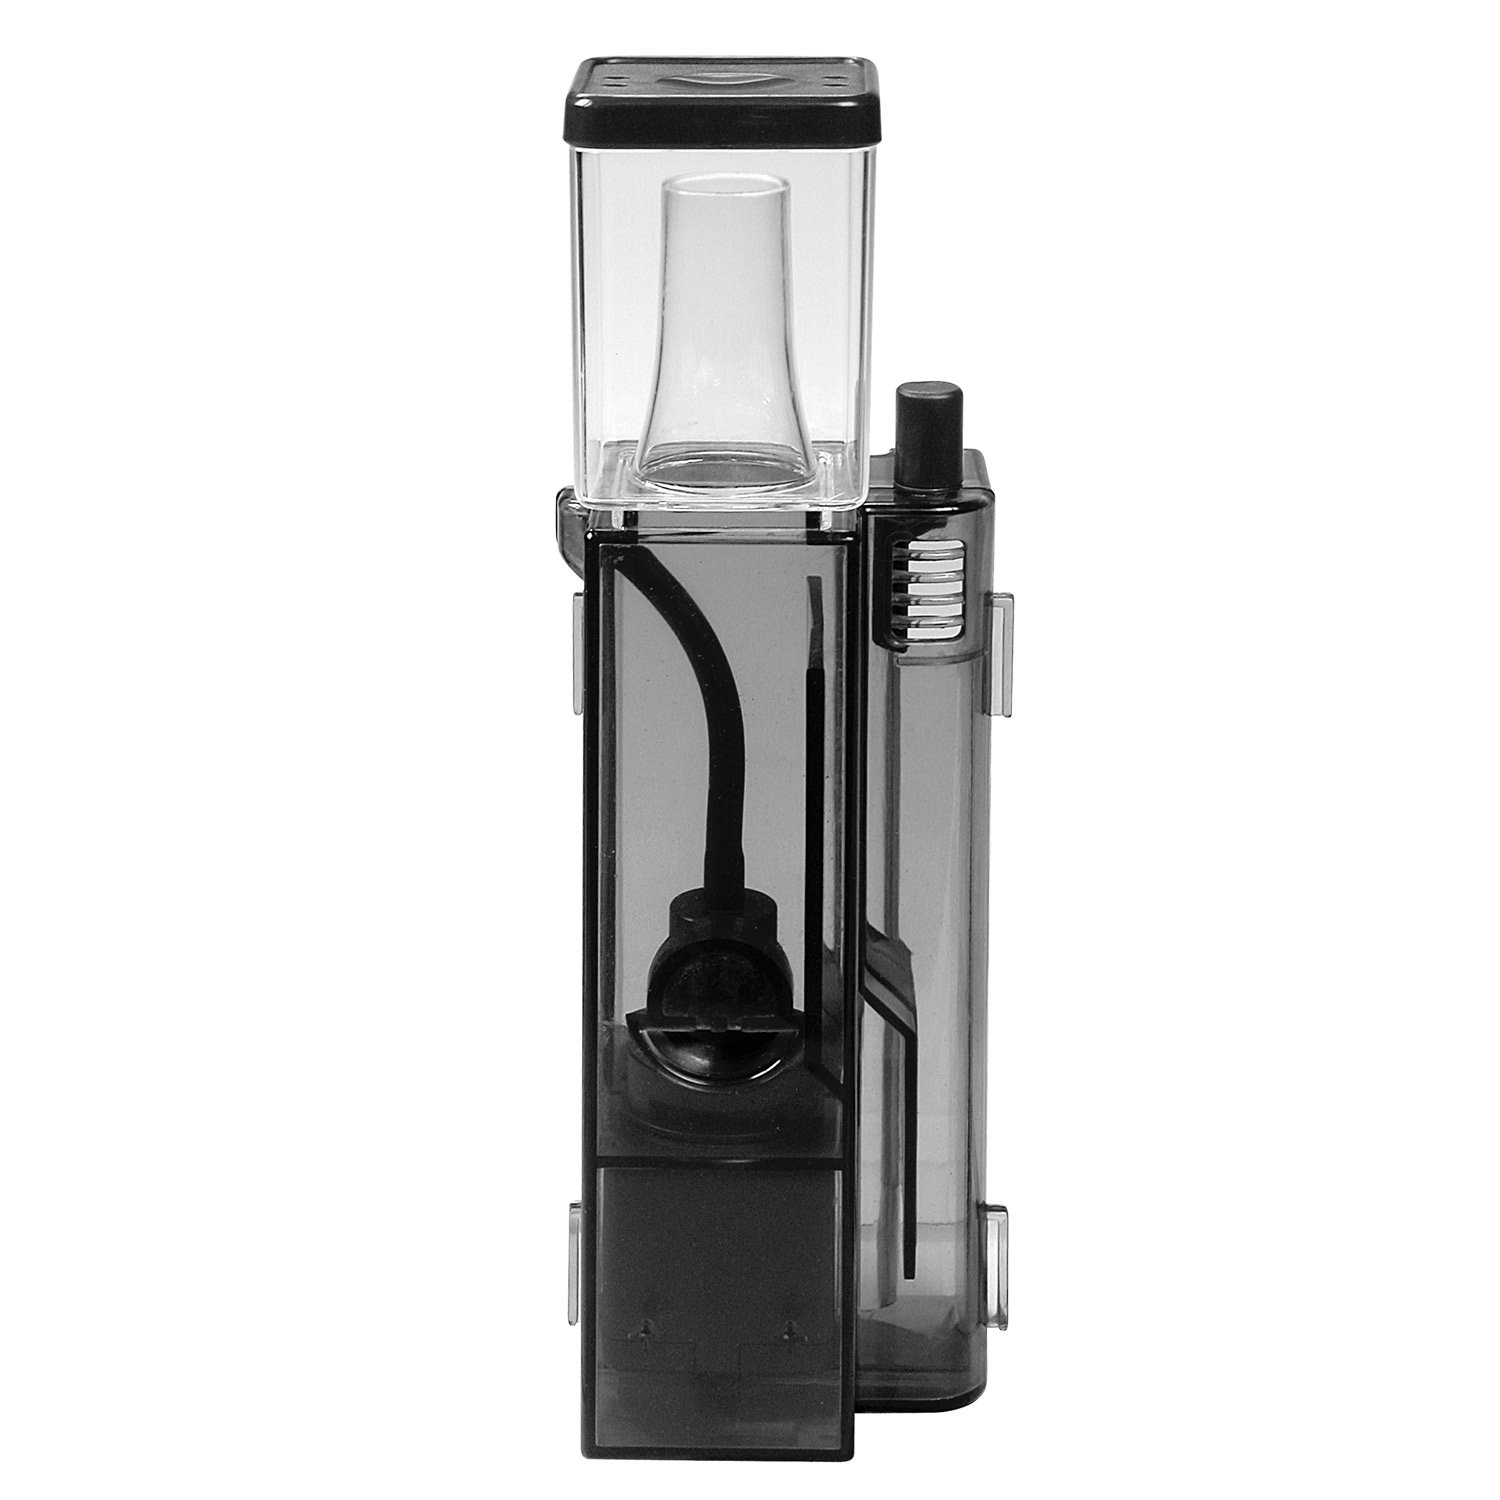 Aquatic Life 115 Mini Internal Protein Skimmer/Filter, 30 Gallon by Aquatic Life